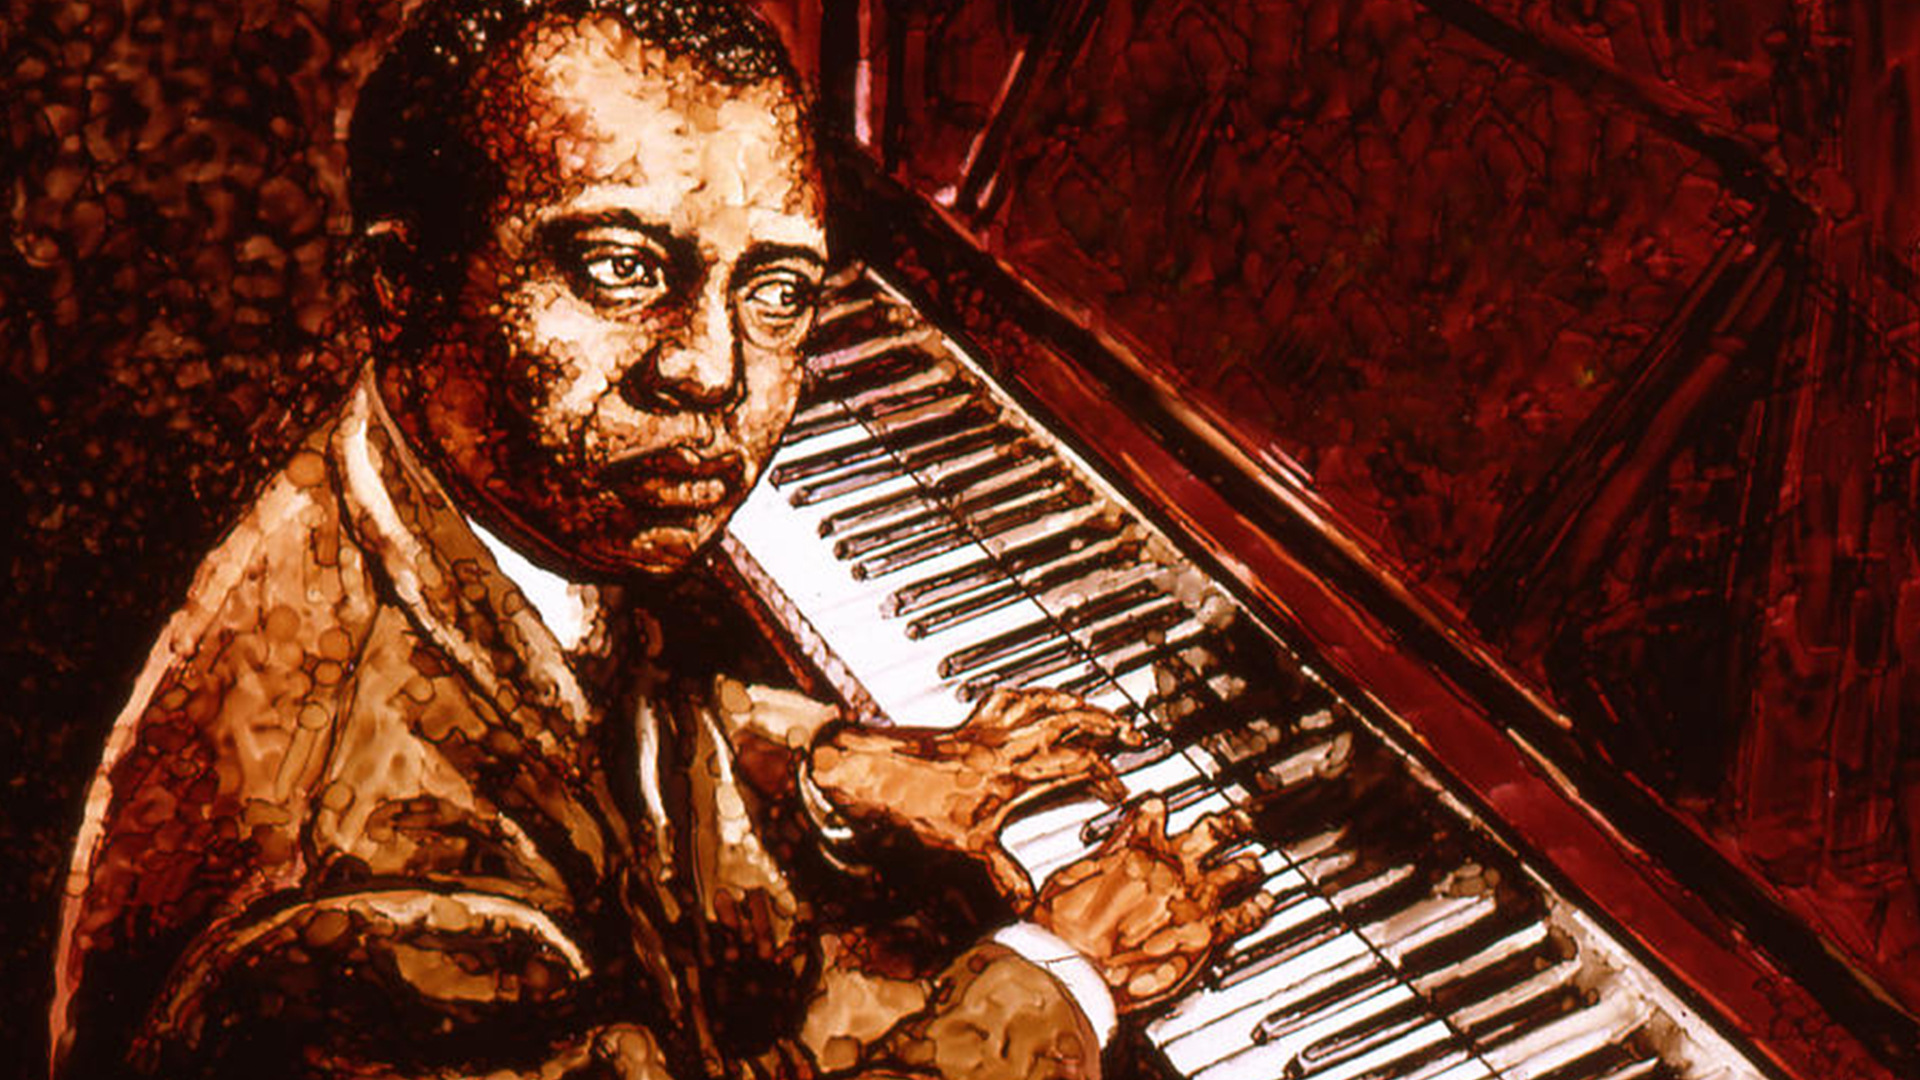 5 Days of Scott Joplin: Day 1, Maple Leaf Rag & a Scott Joplin Story